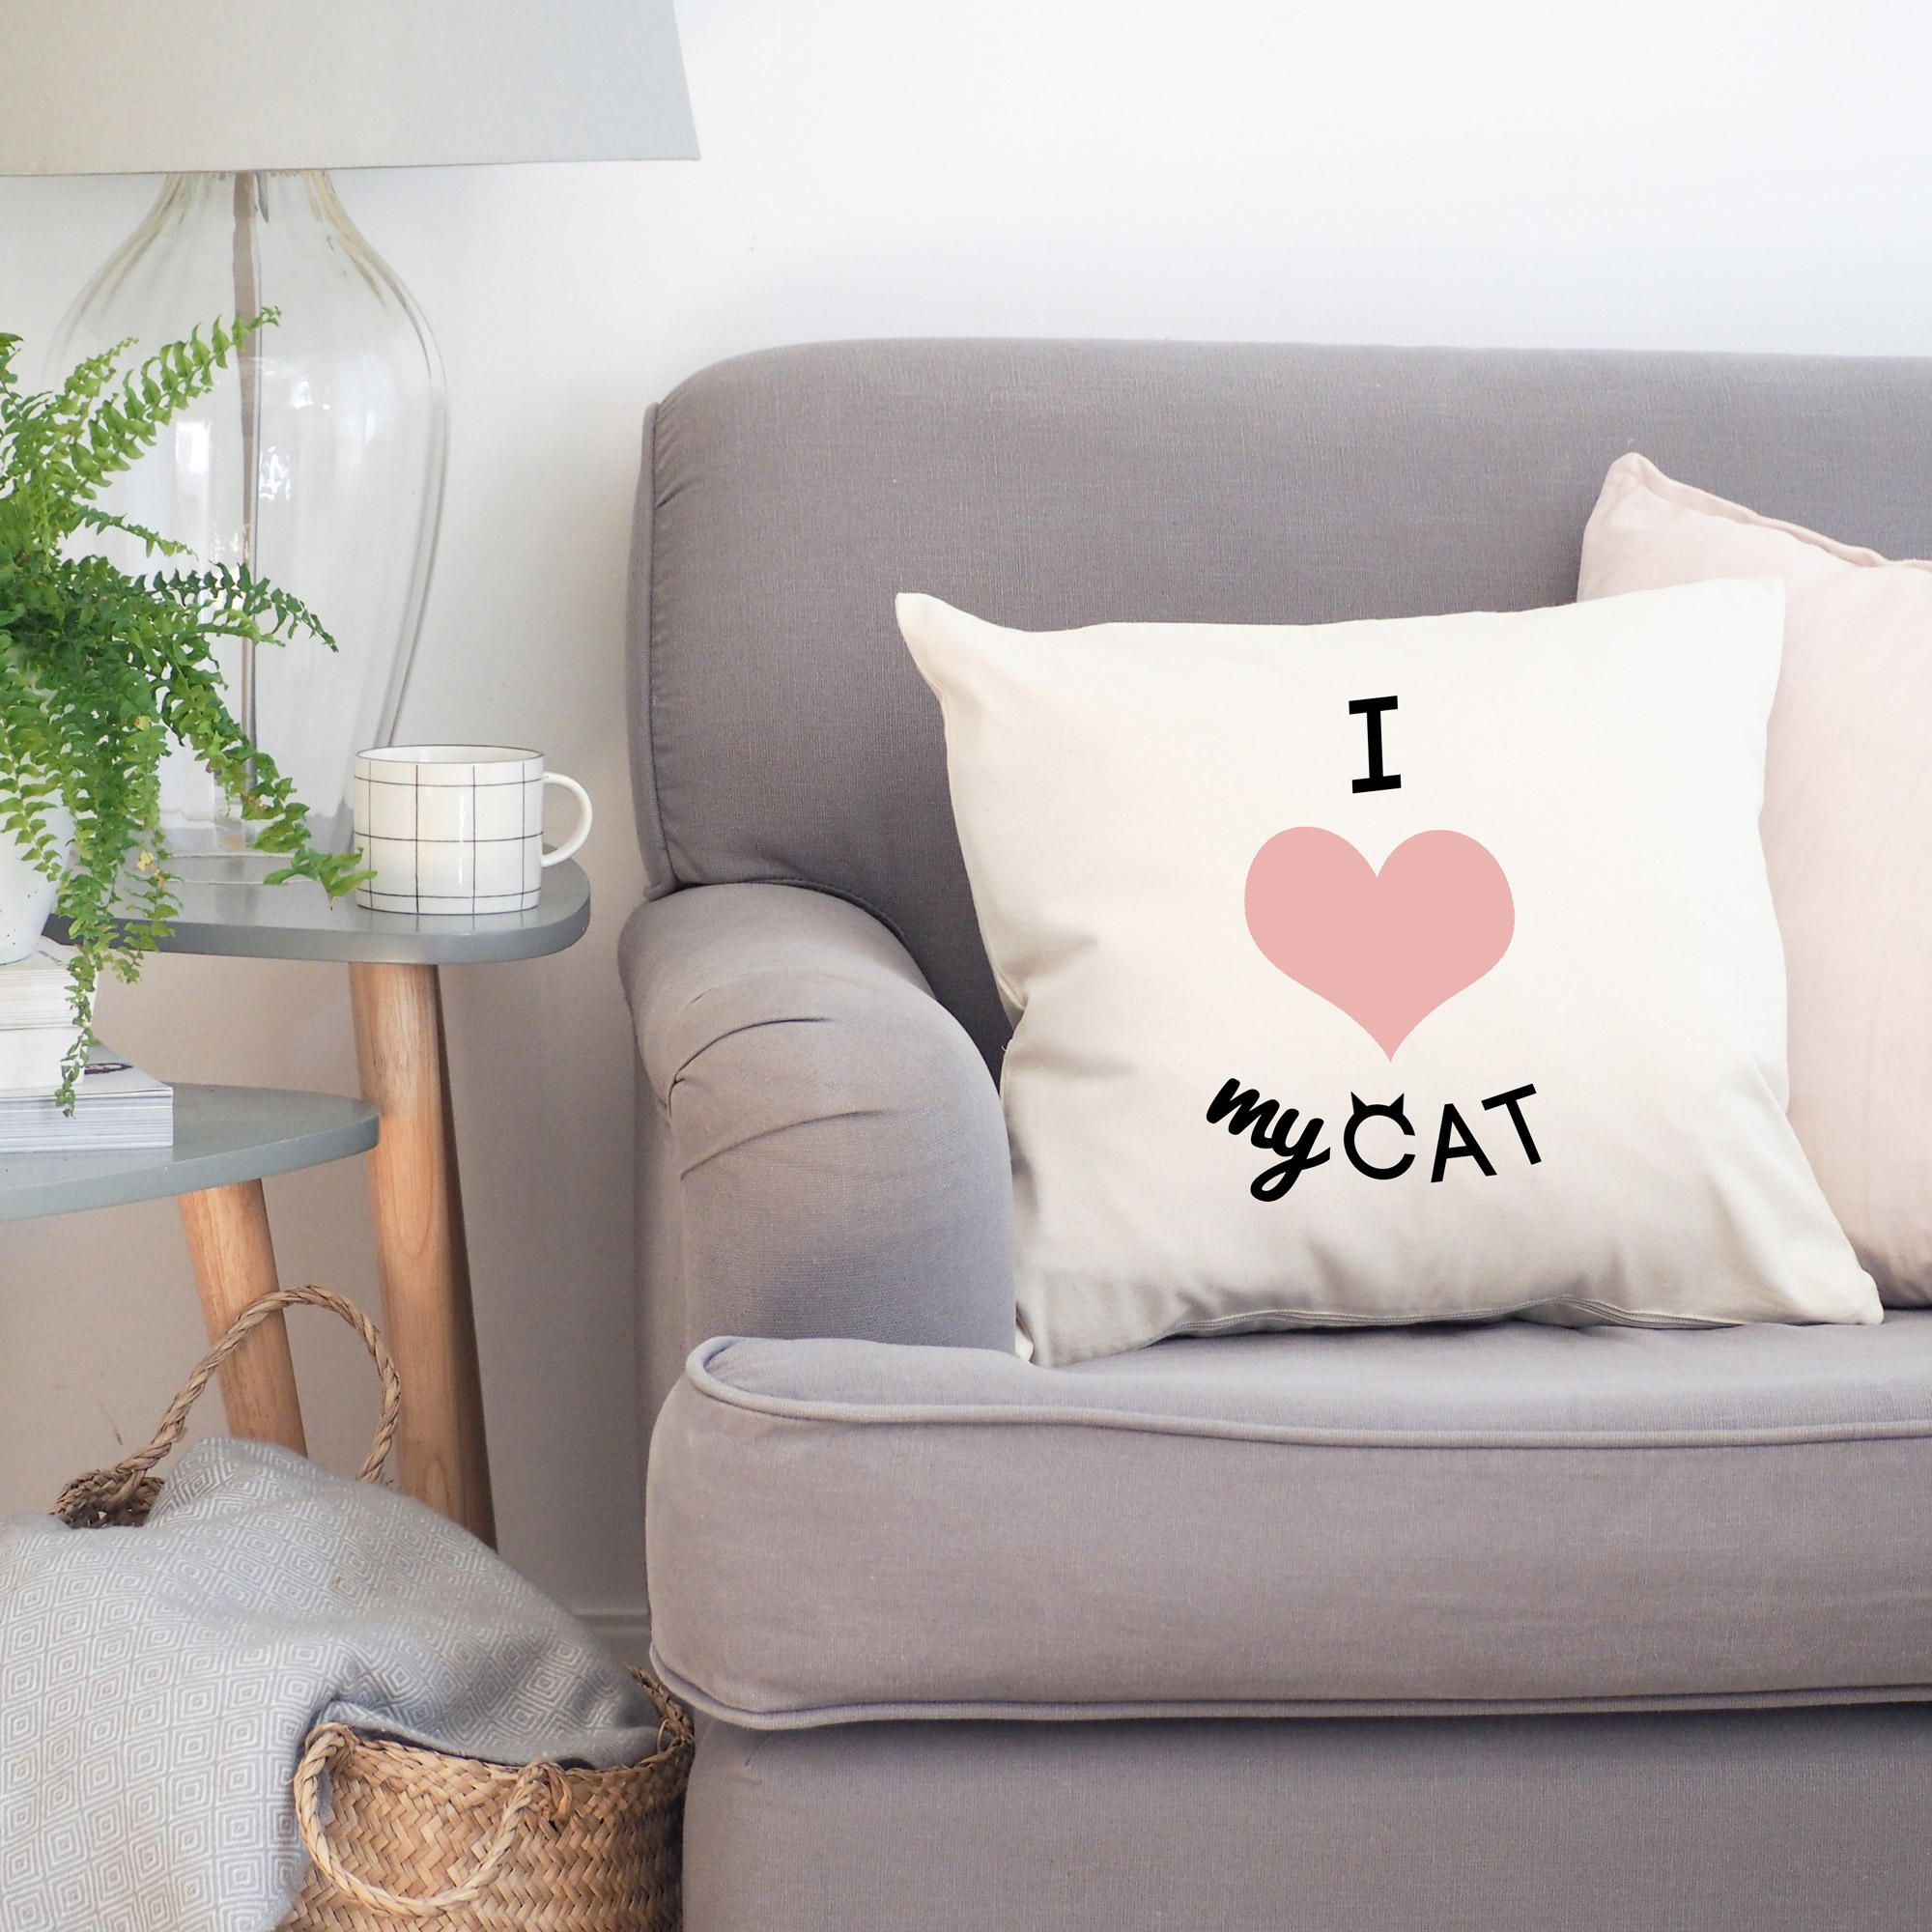 i heart my cat cushion cover